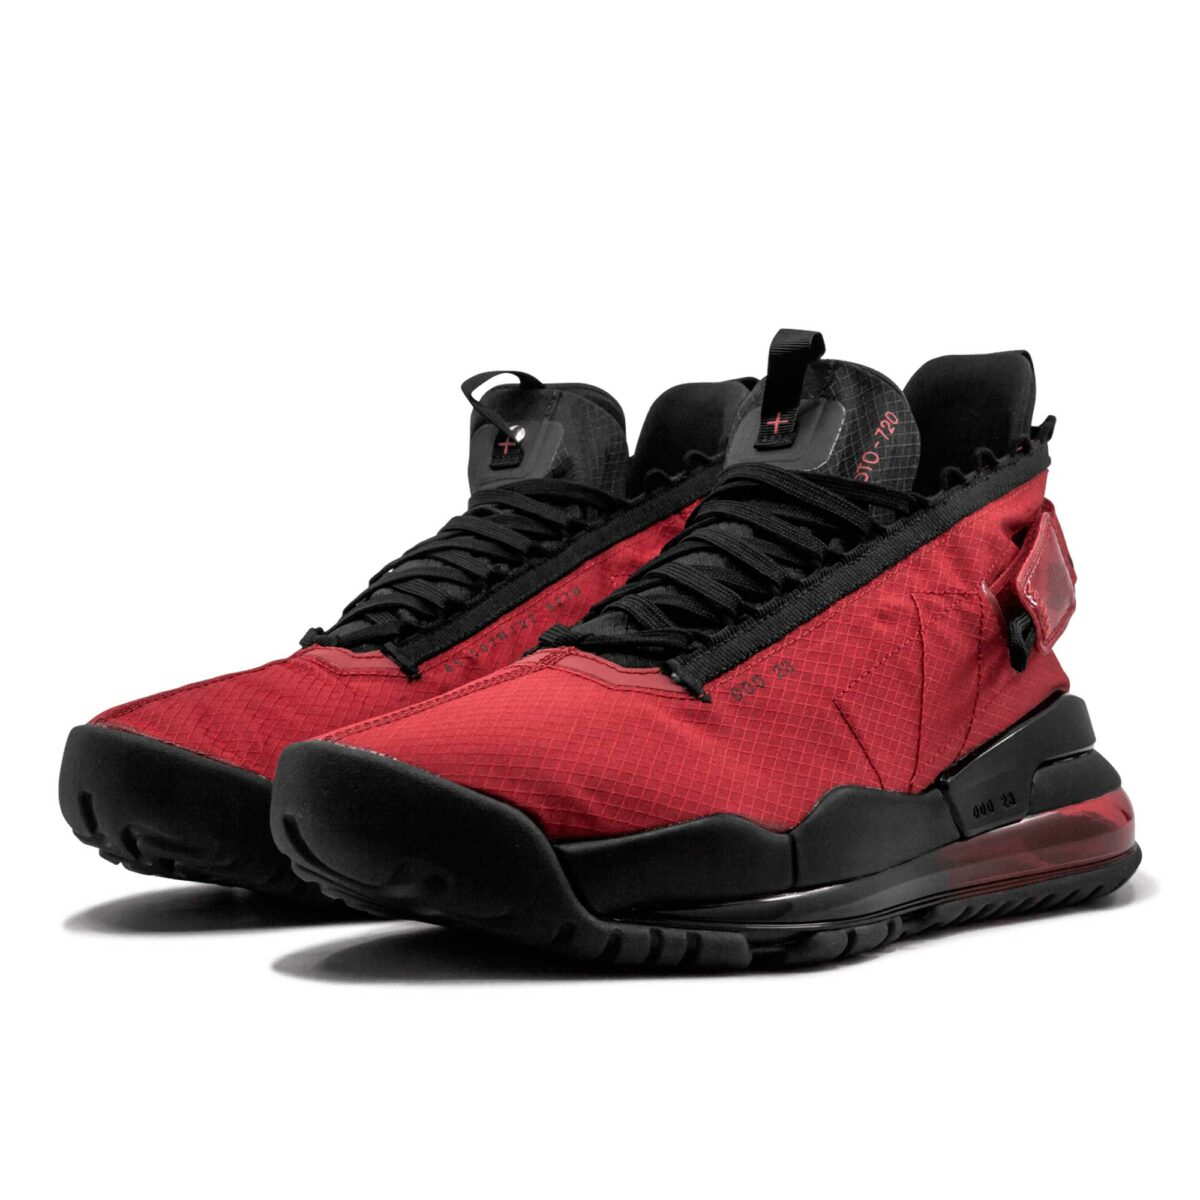 nike air jordan proto max 720 red black BQ6623_600 купить